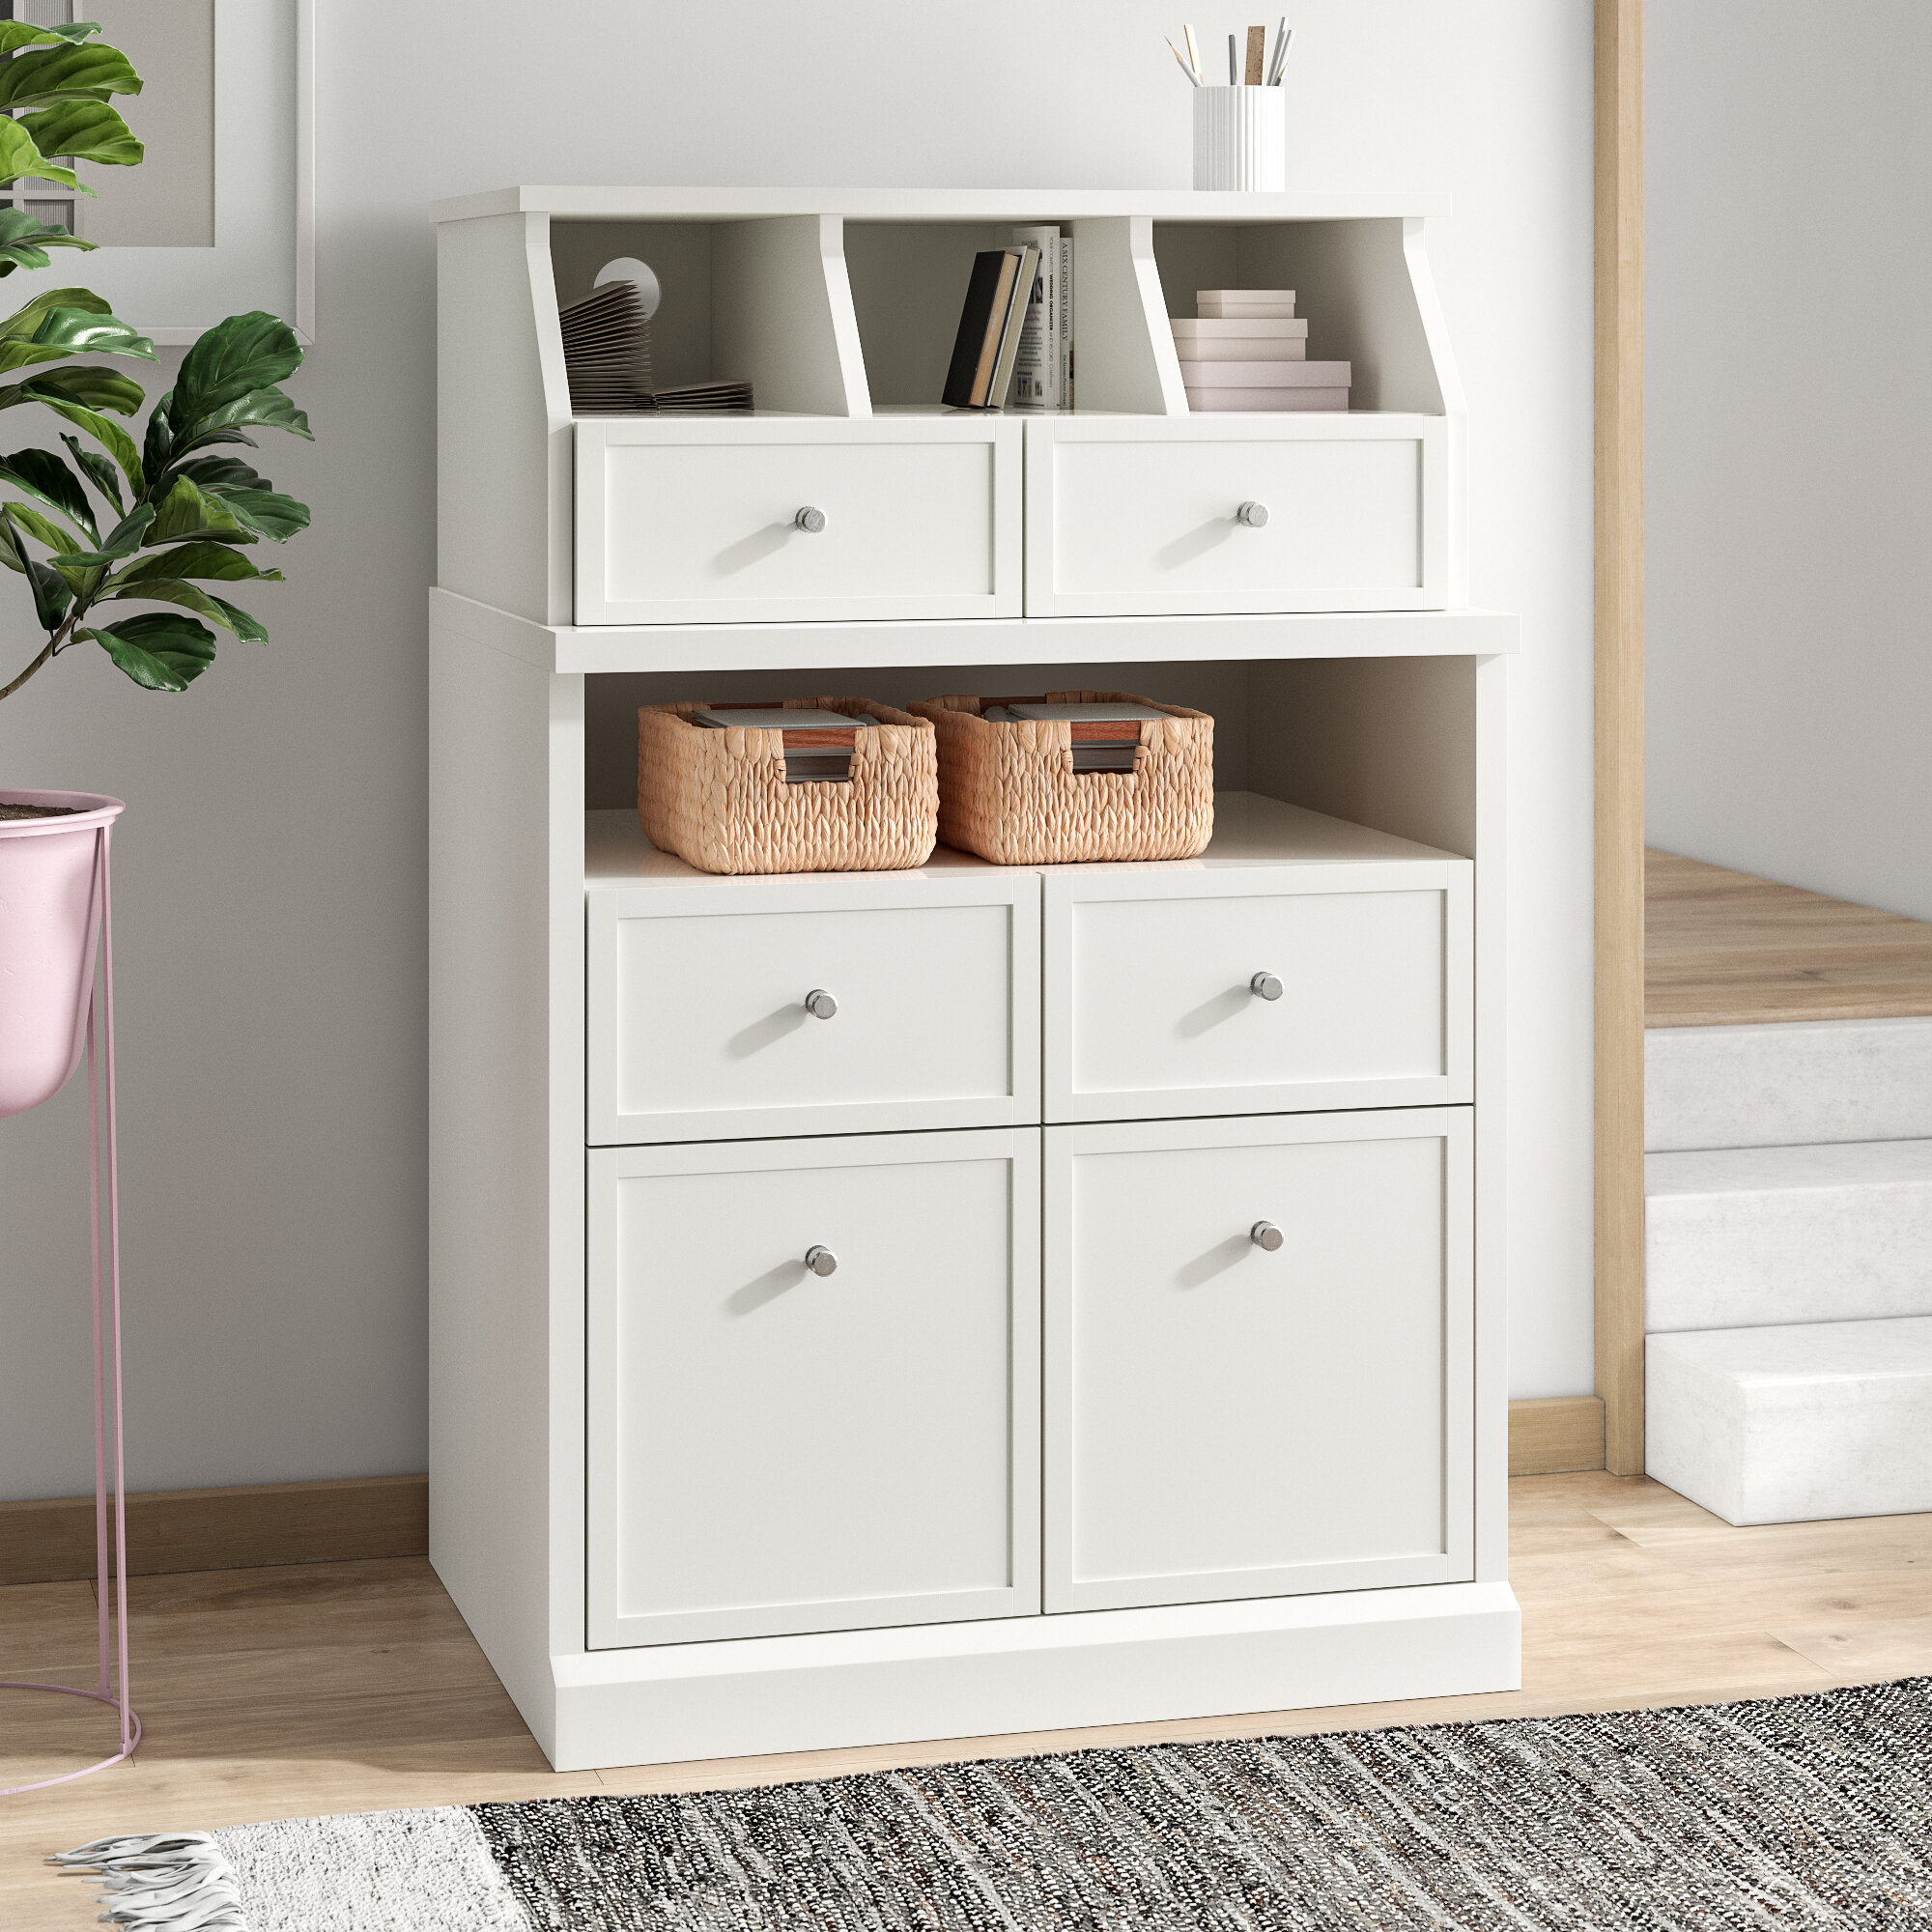 Dotted Line Bambi 32 13 X 17 5 Crafting Storage Cabinet Reviews Wayfair